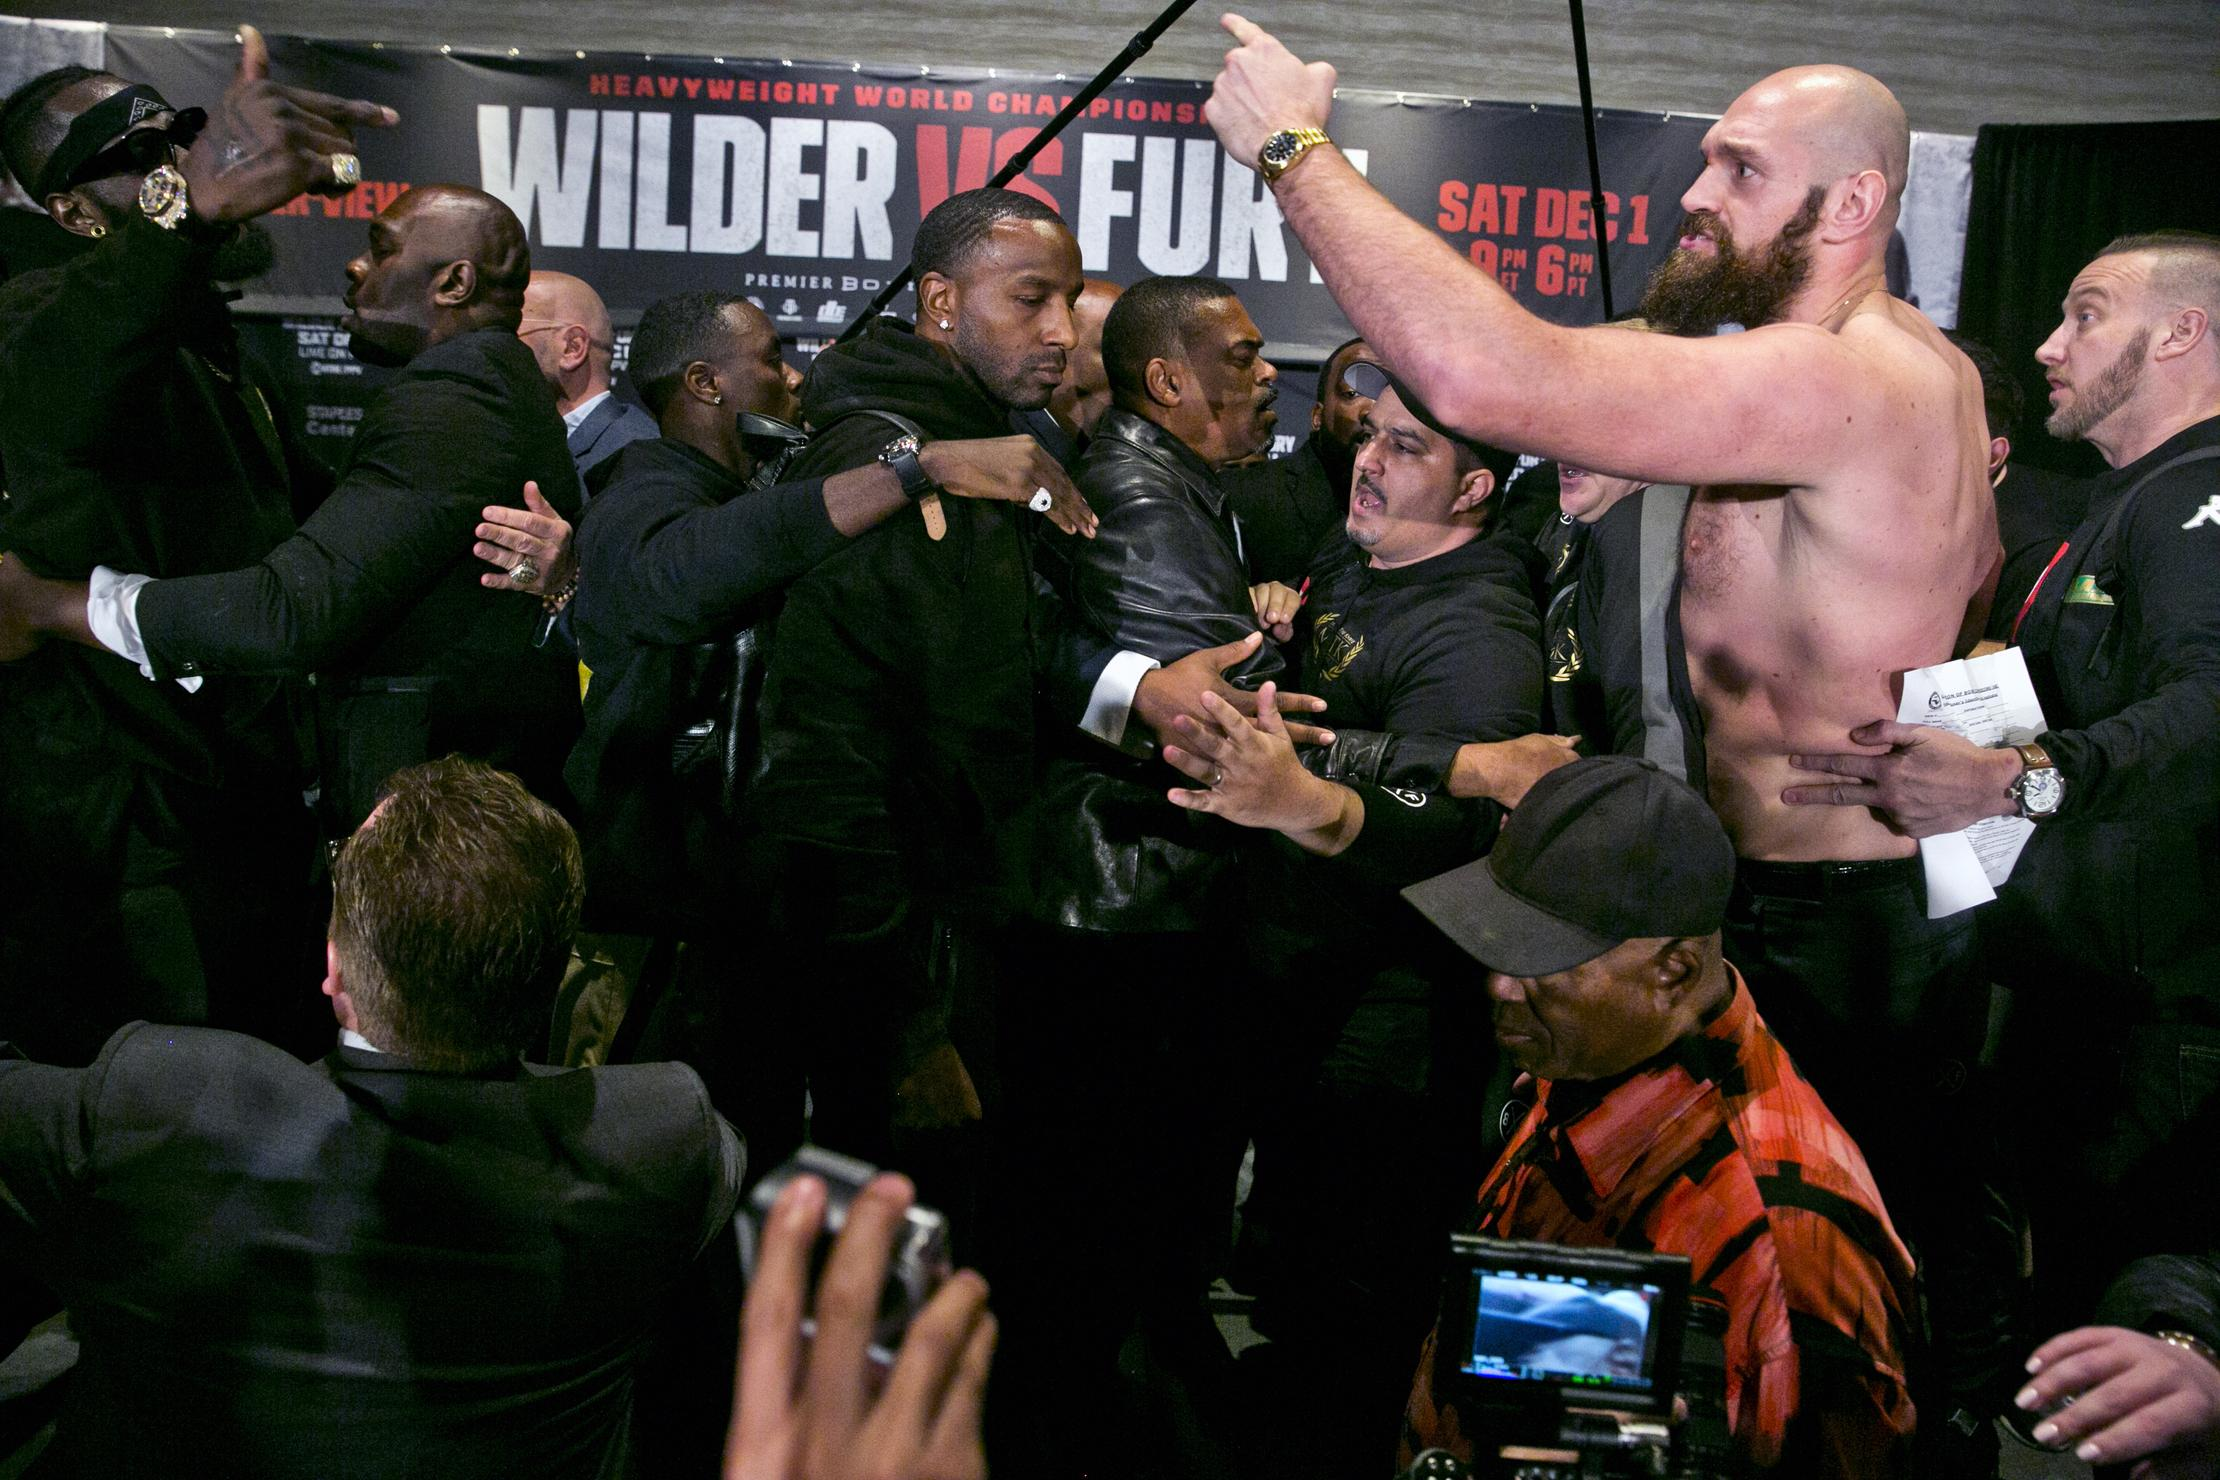 As you might have expected, it all kicked off at the Fury vs Wilder press conference